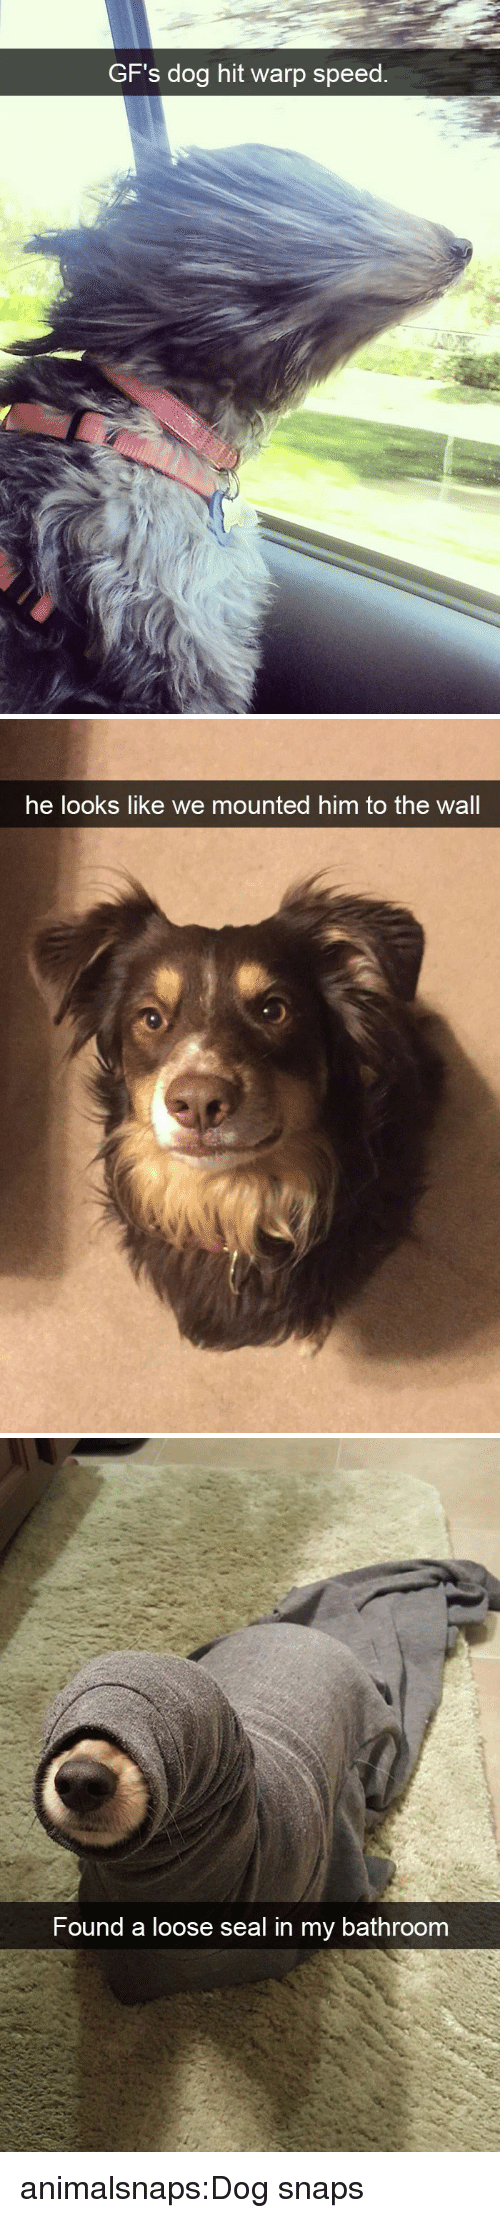 Tumblr, Blog, and Seal: GF's dog hit warp speed.   he looks like we mounted him to the wall   Found a loose seal in my bathroom animalsnaps:Dog snaps